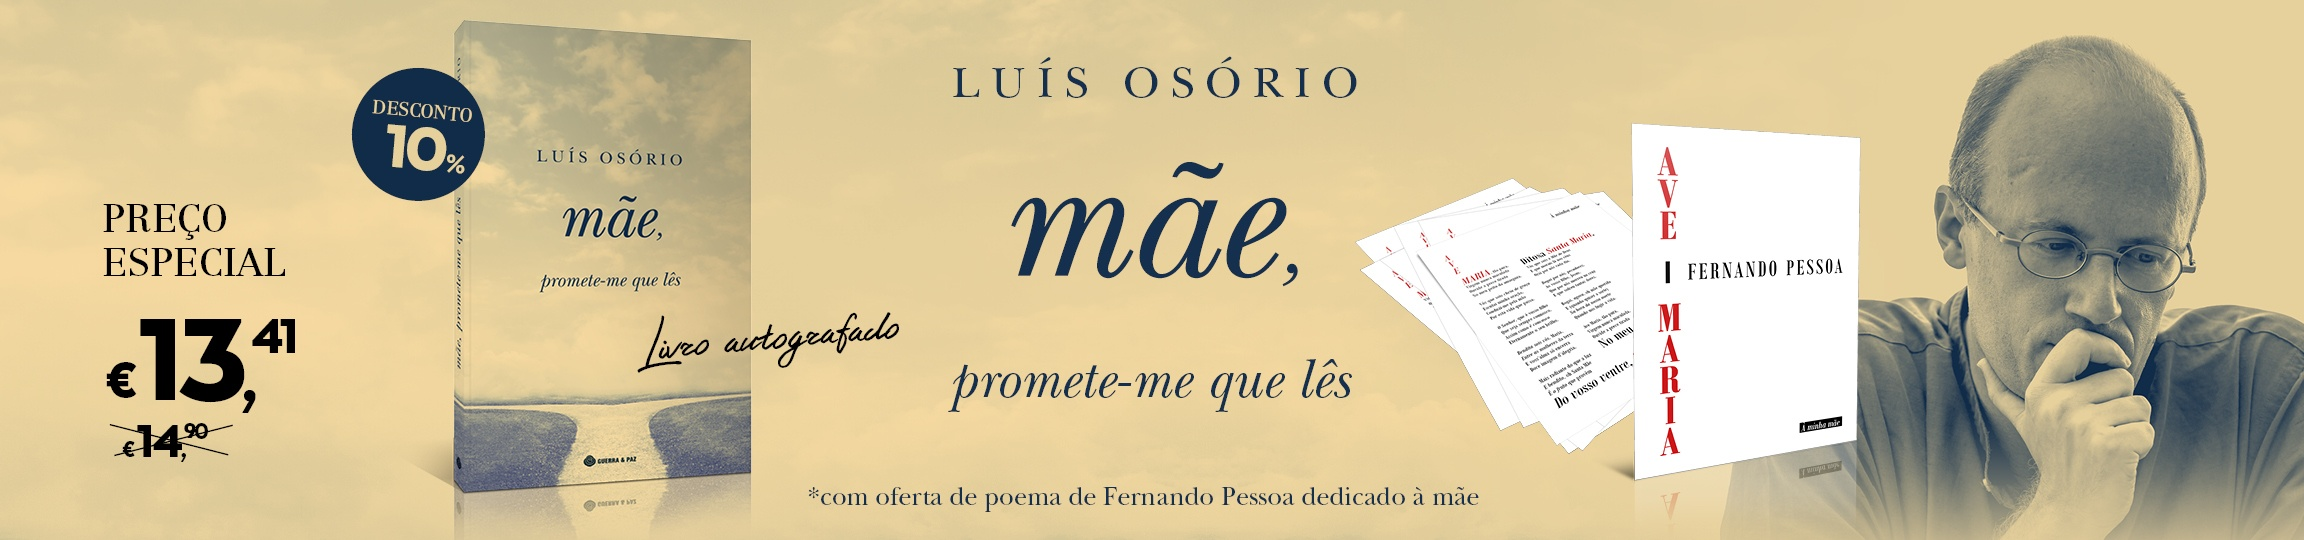 https://www.guerraepaz.pt/inicio/498-mae-promete-me-que-les.html?search_query=mae&results=4